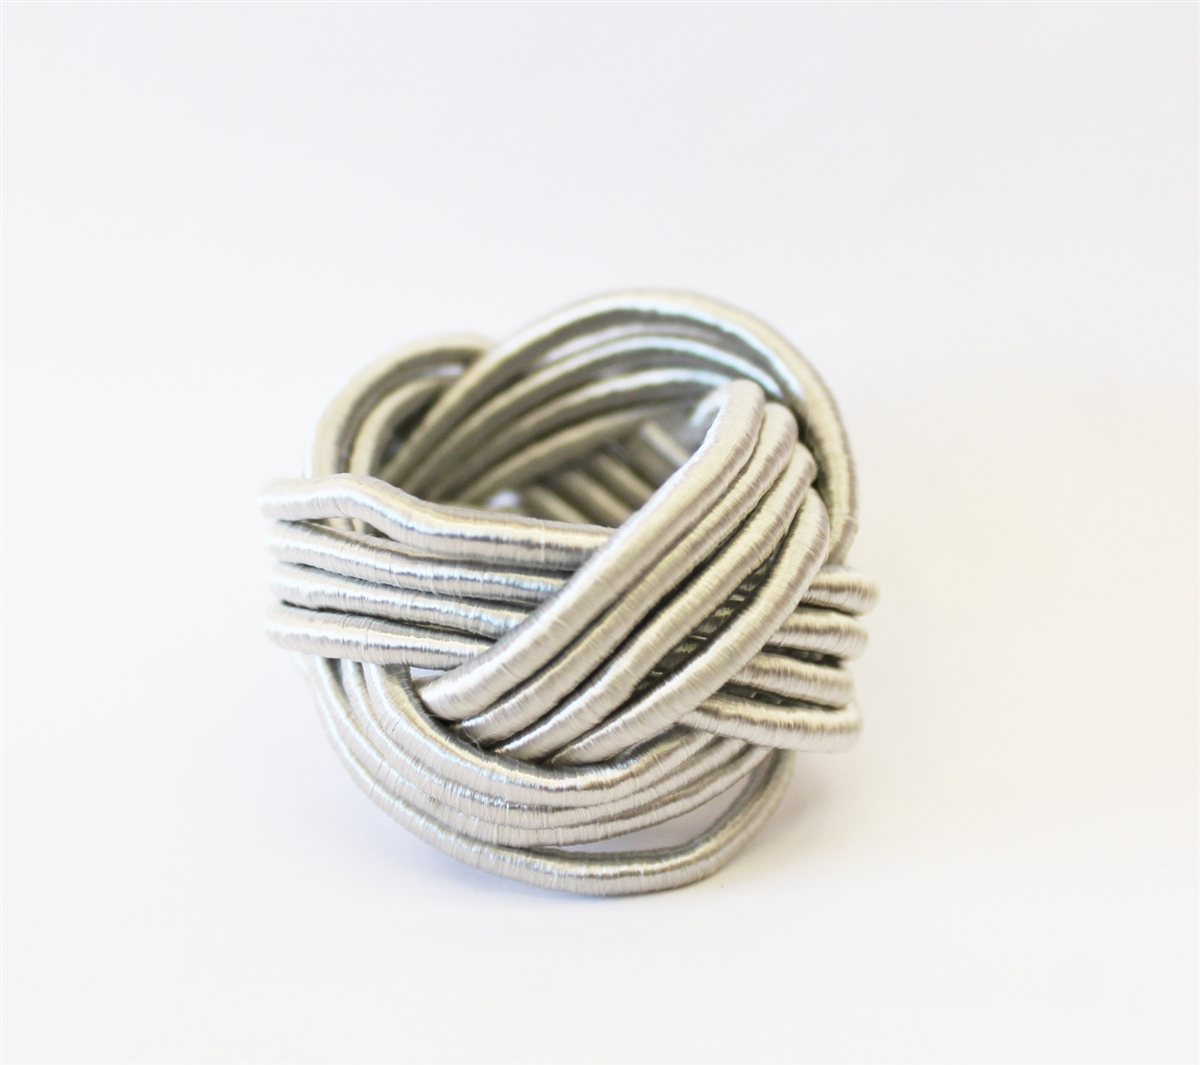 Silver Rope Design Napkin Rings - Set of 4